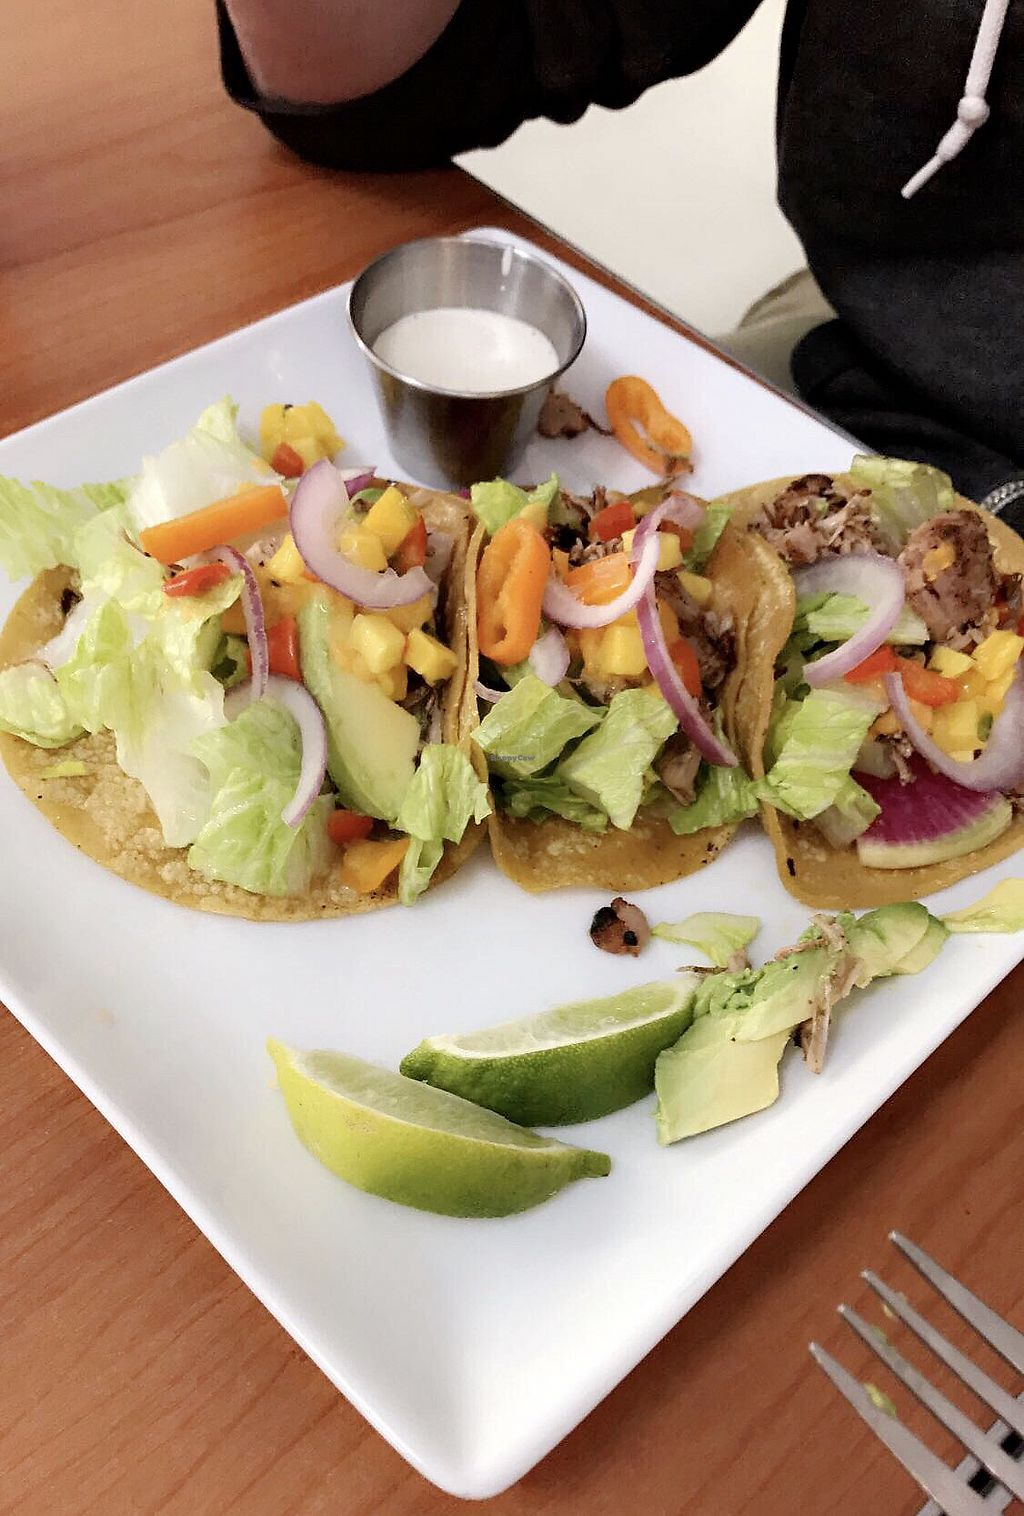 """Photo of Cafe Wylde  by <a href=""""/members/profile/Nastastia"""">Nastastia</a> <br/>Peach habanero tacos  <br/> February 23, 2018  - <a href='/contact/abuse/image/72436/362604'>Report</a>"""